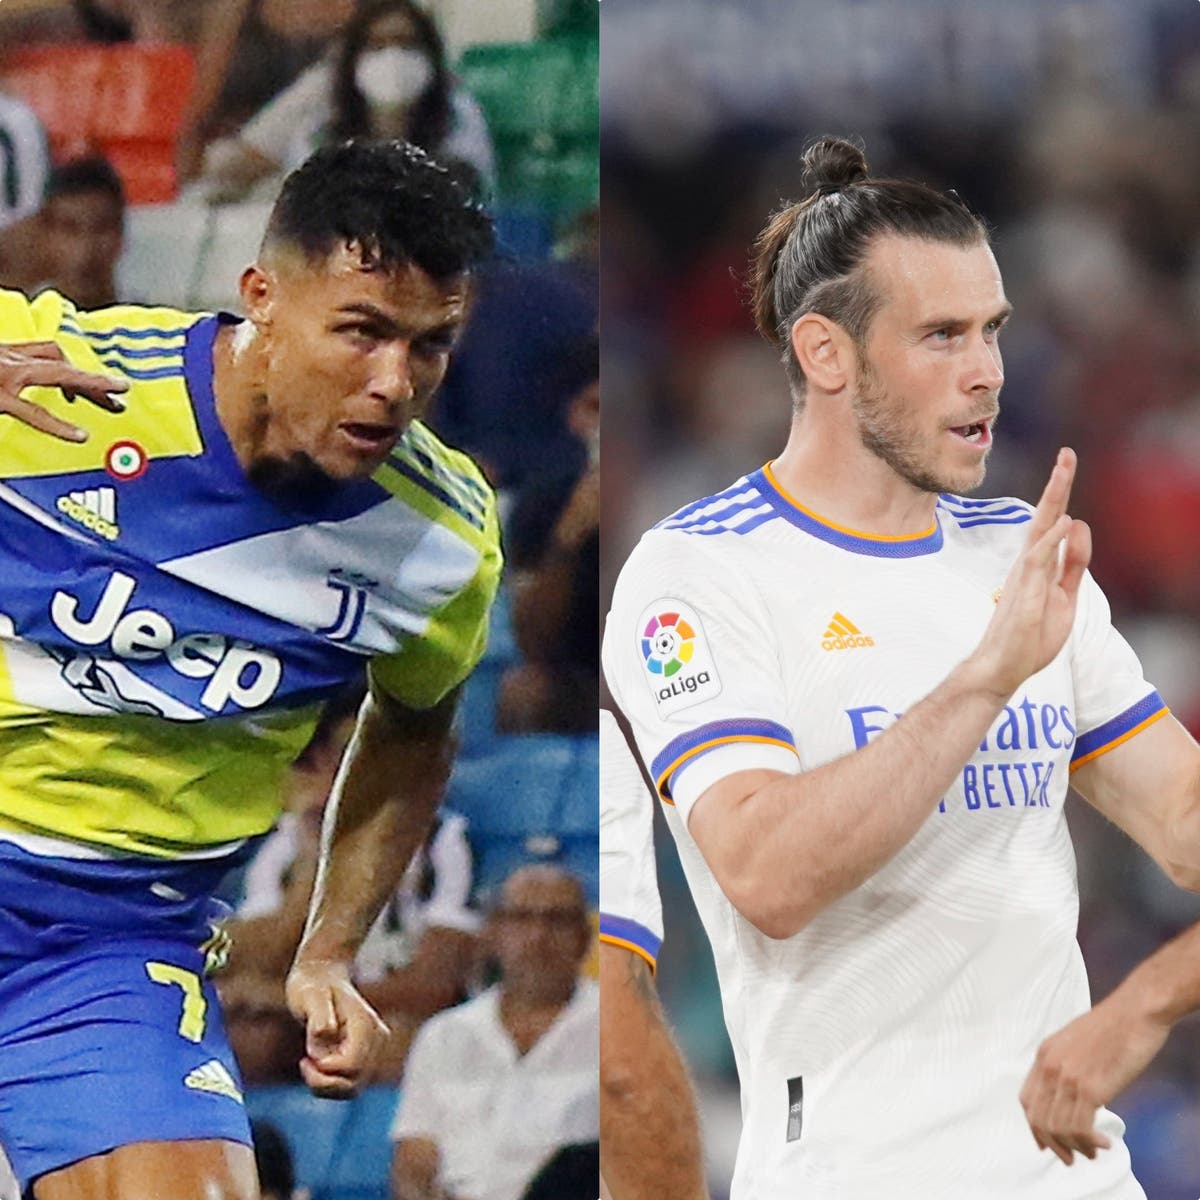 Ronaldo and Bale catch the eye but neither Juventus nor Real Madrid manage a win